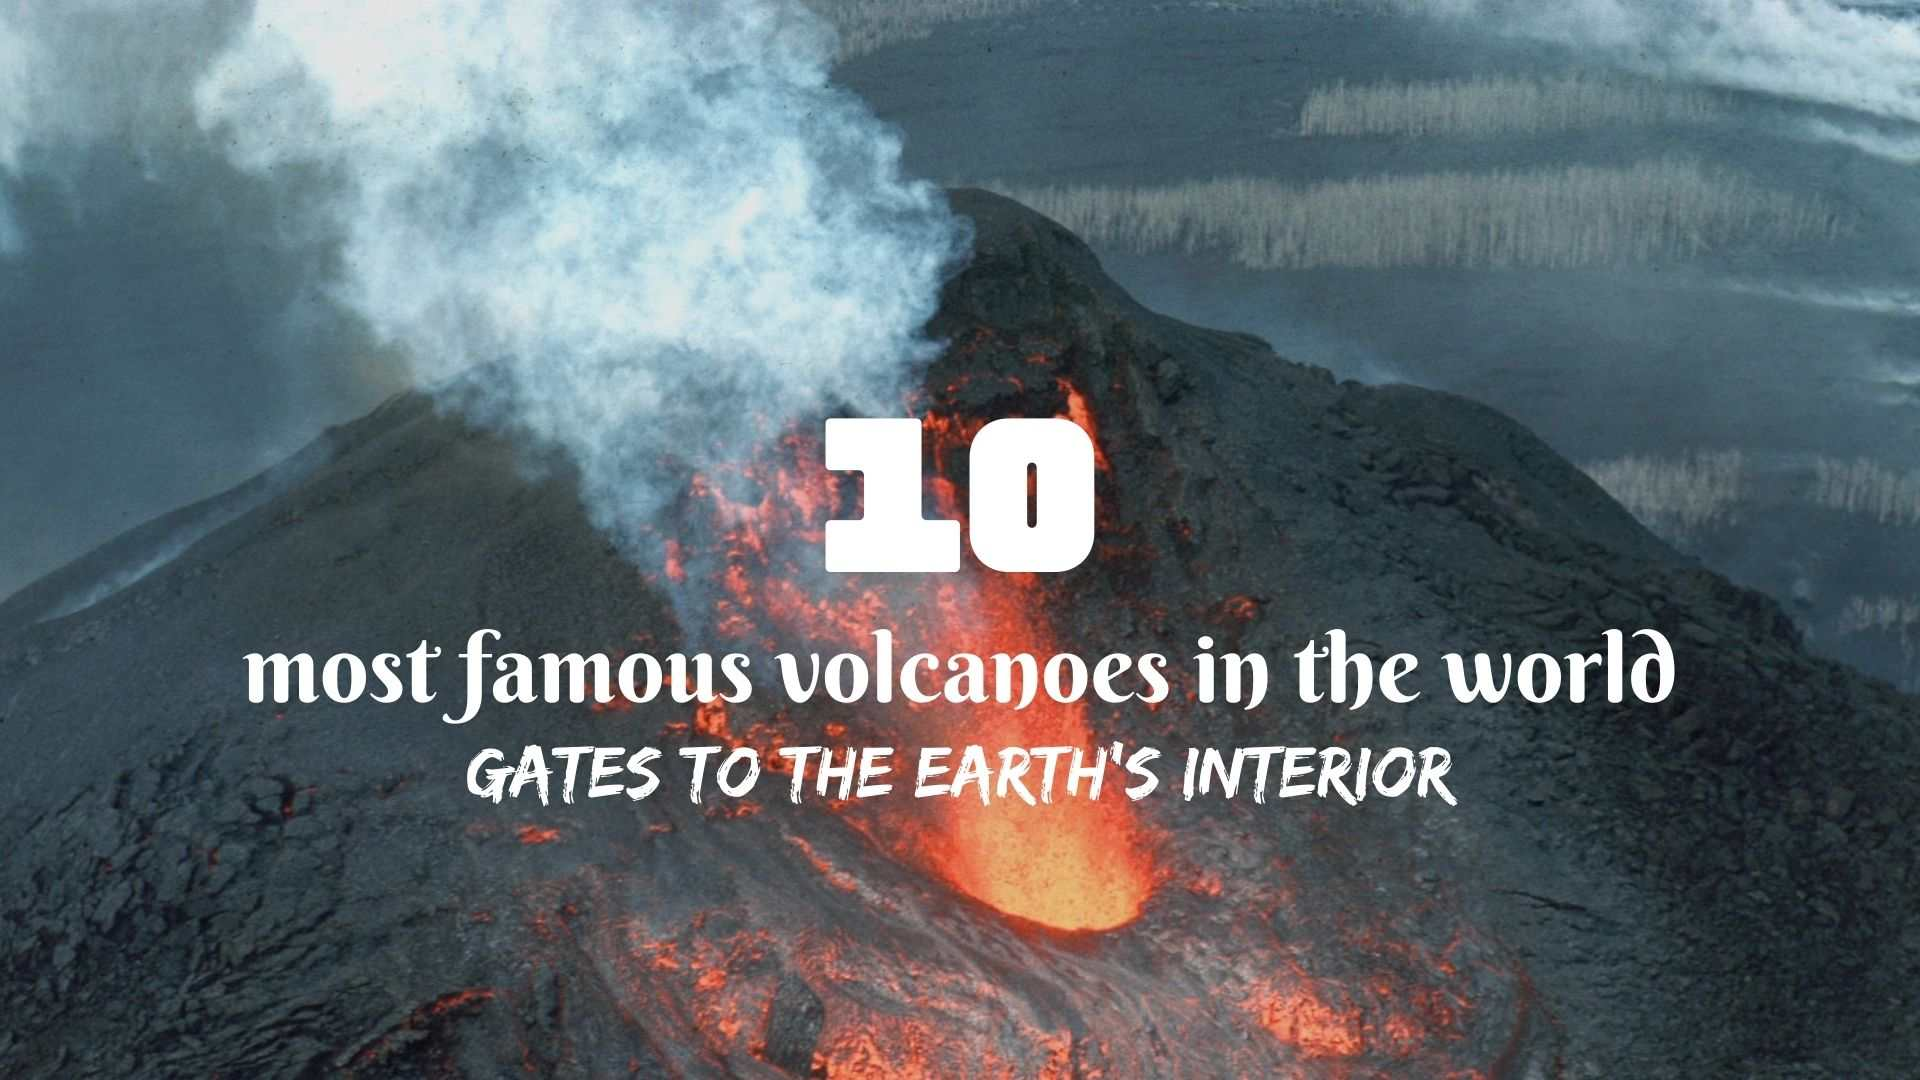 The 10 most famous volcanoes in the world- gates to the Earth's interior